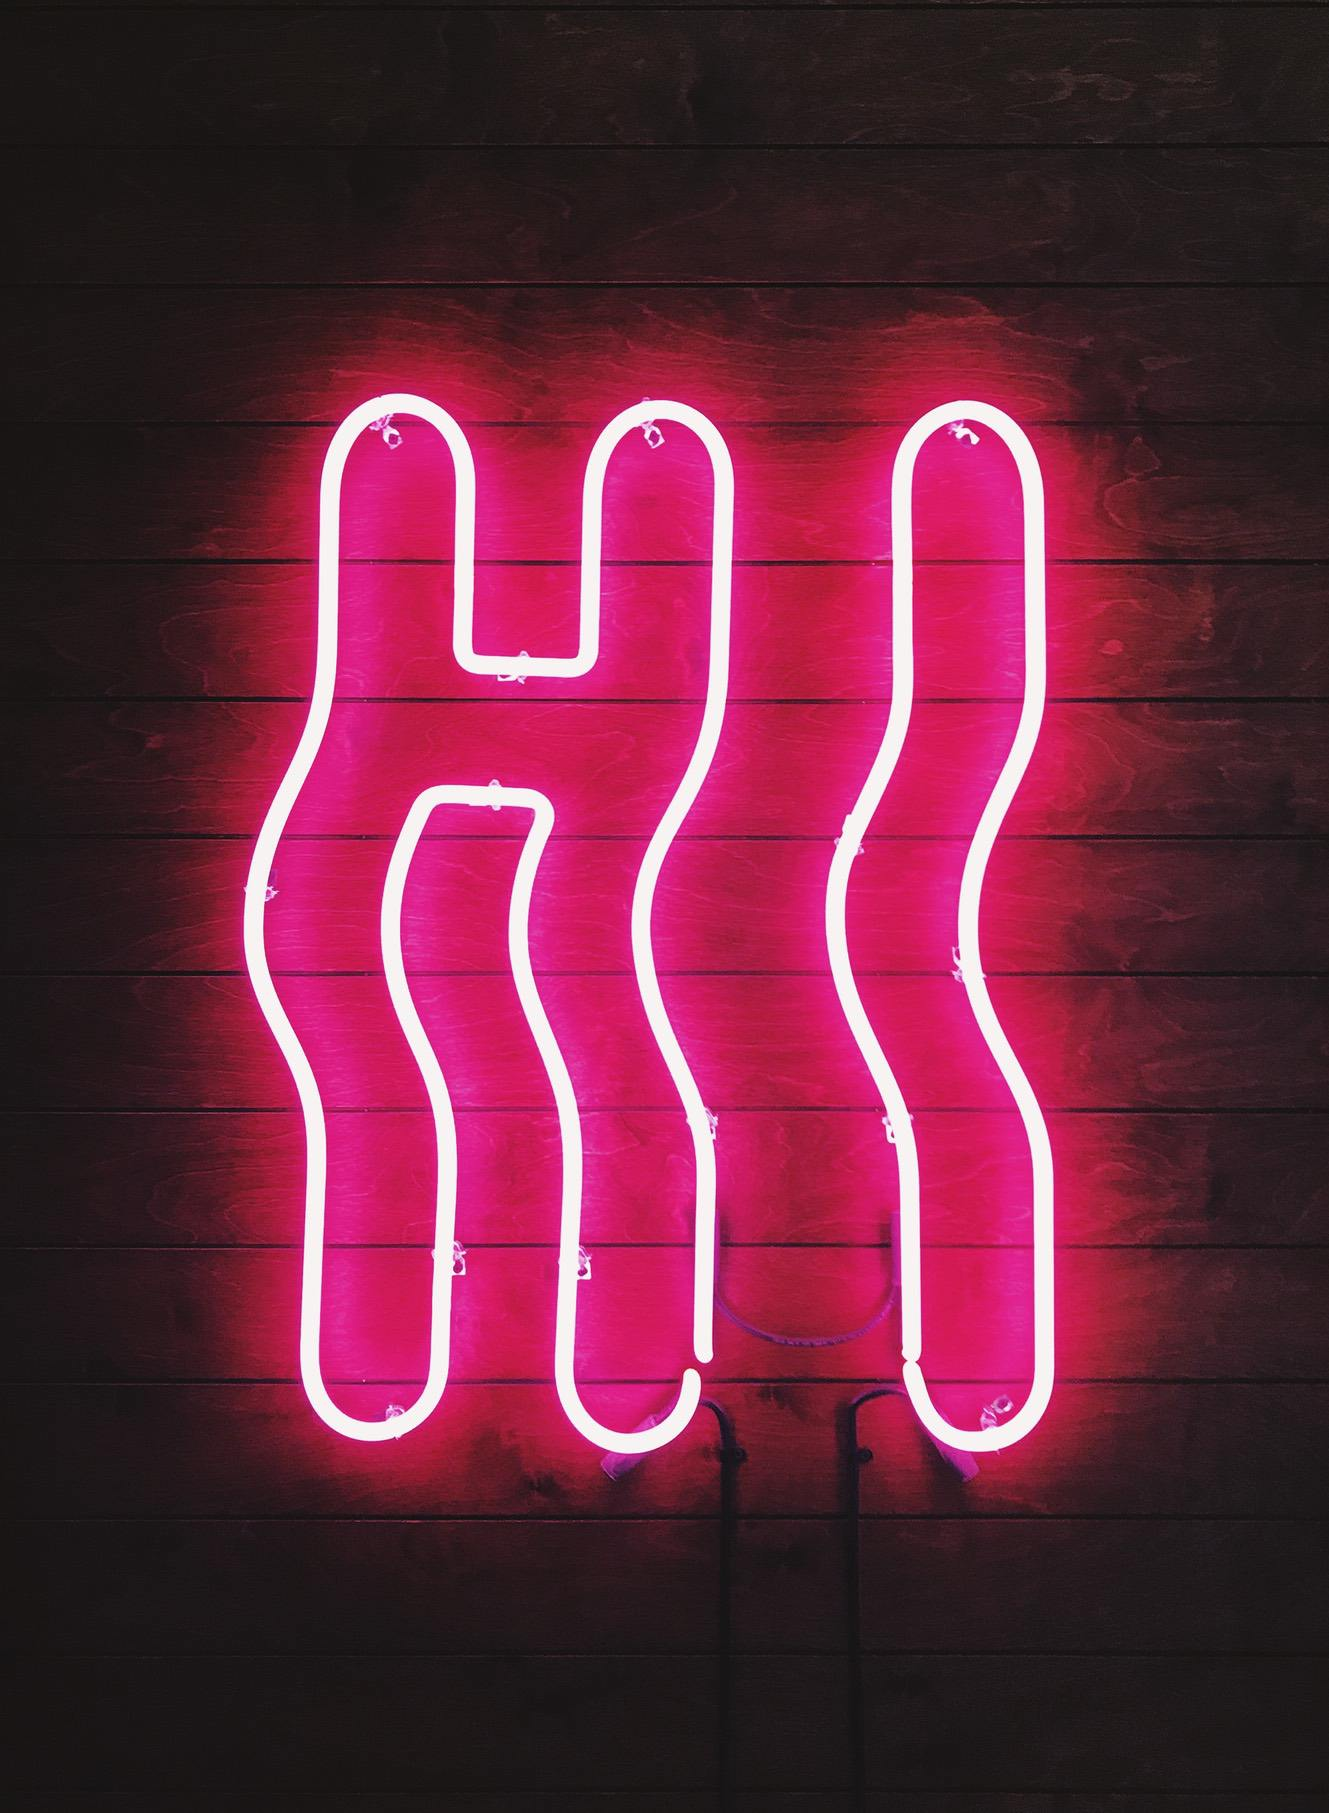 Trendy Neon Wallpapers For iPhone